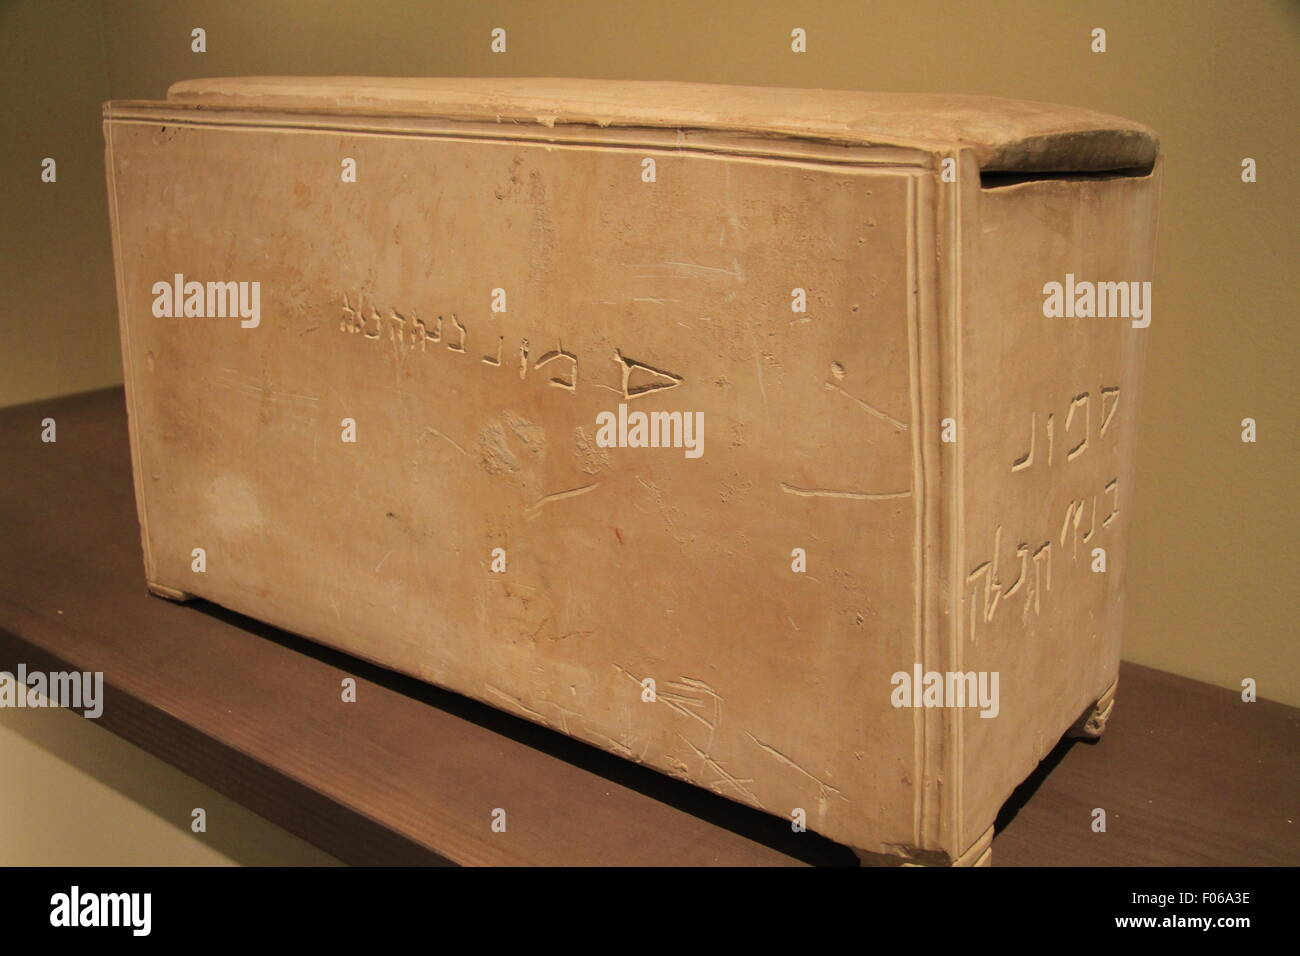 A 1st century AD ossuary with an Aramic inscription 'Builder of the Temple' on display at the Israel Museum - Stock Image